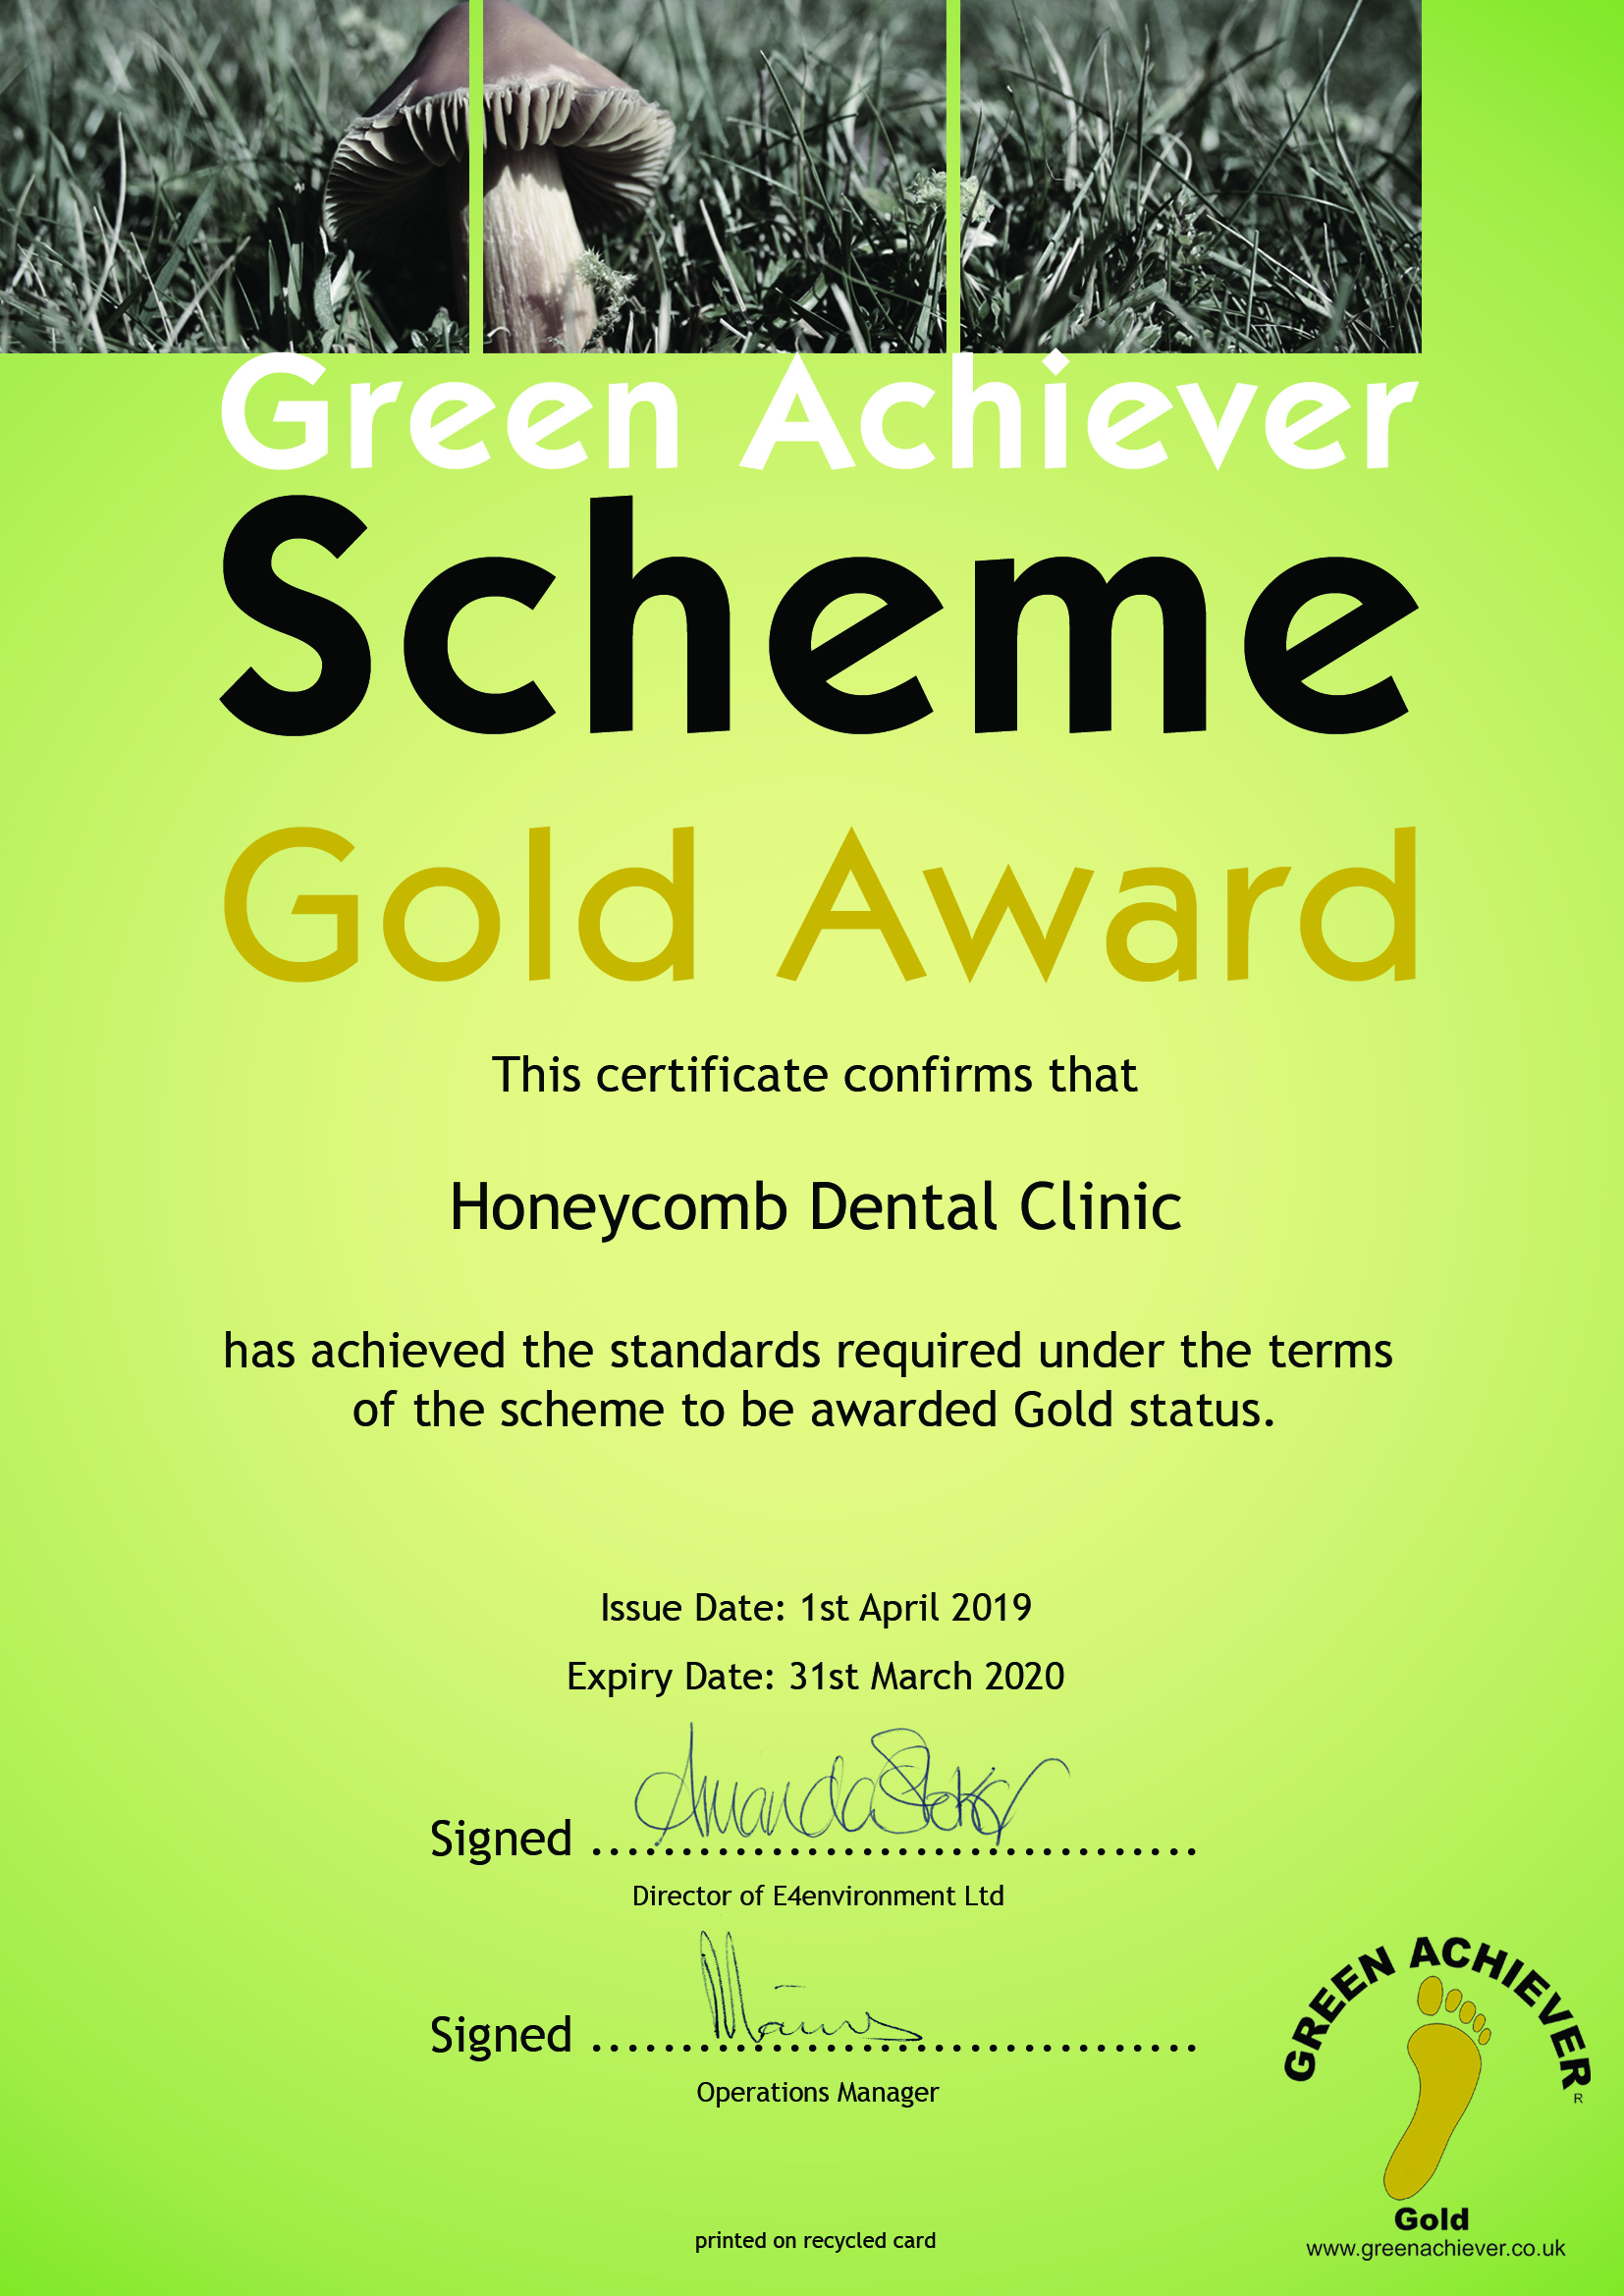 Honeycomb_Gold_Award_Certificate_2019.jpg